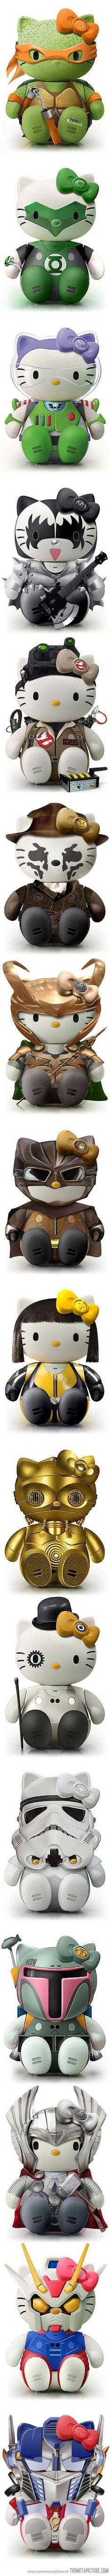 funny-Hello-Kitty-characters-costumes